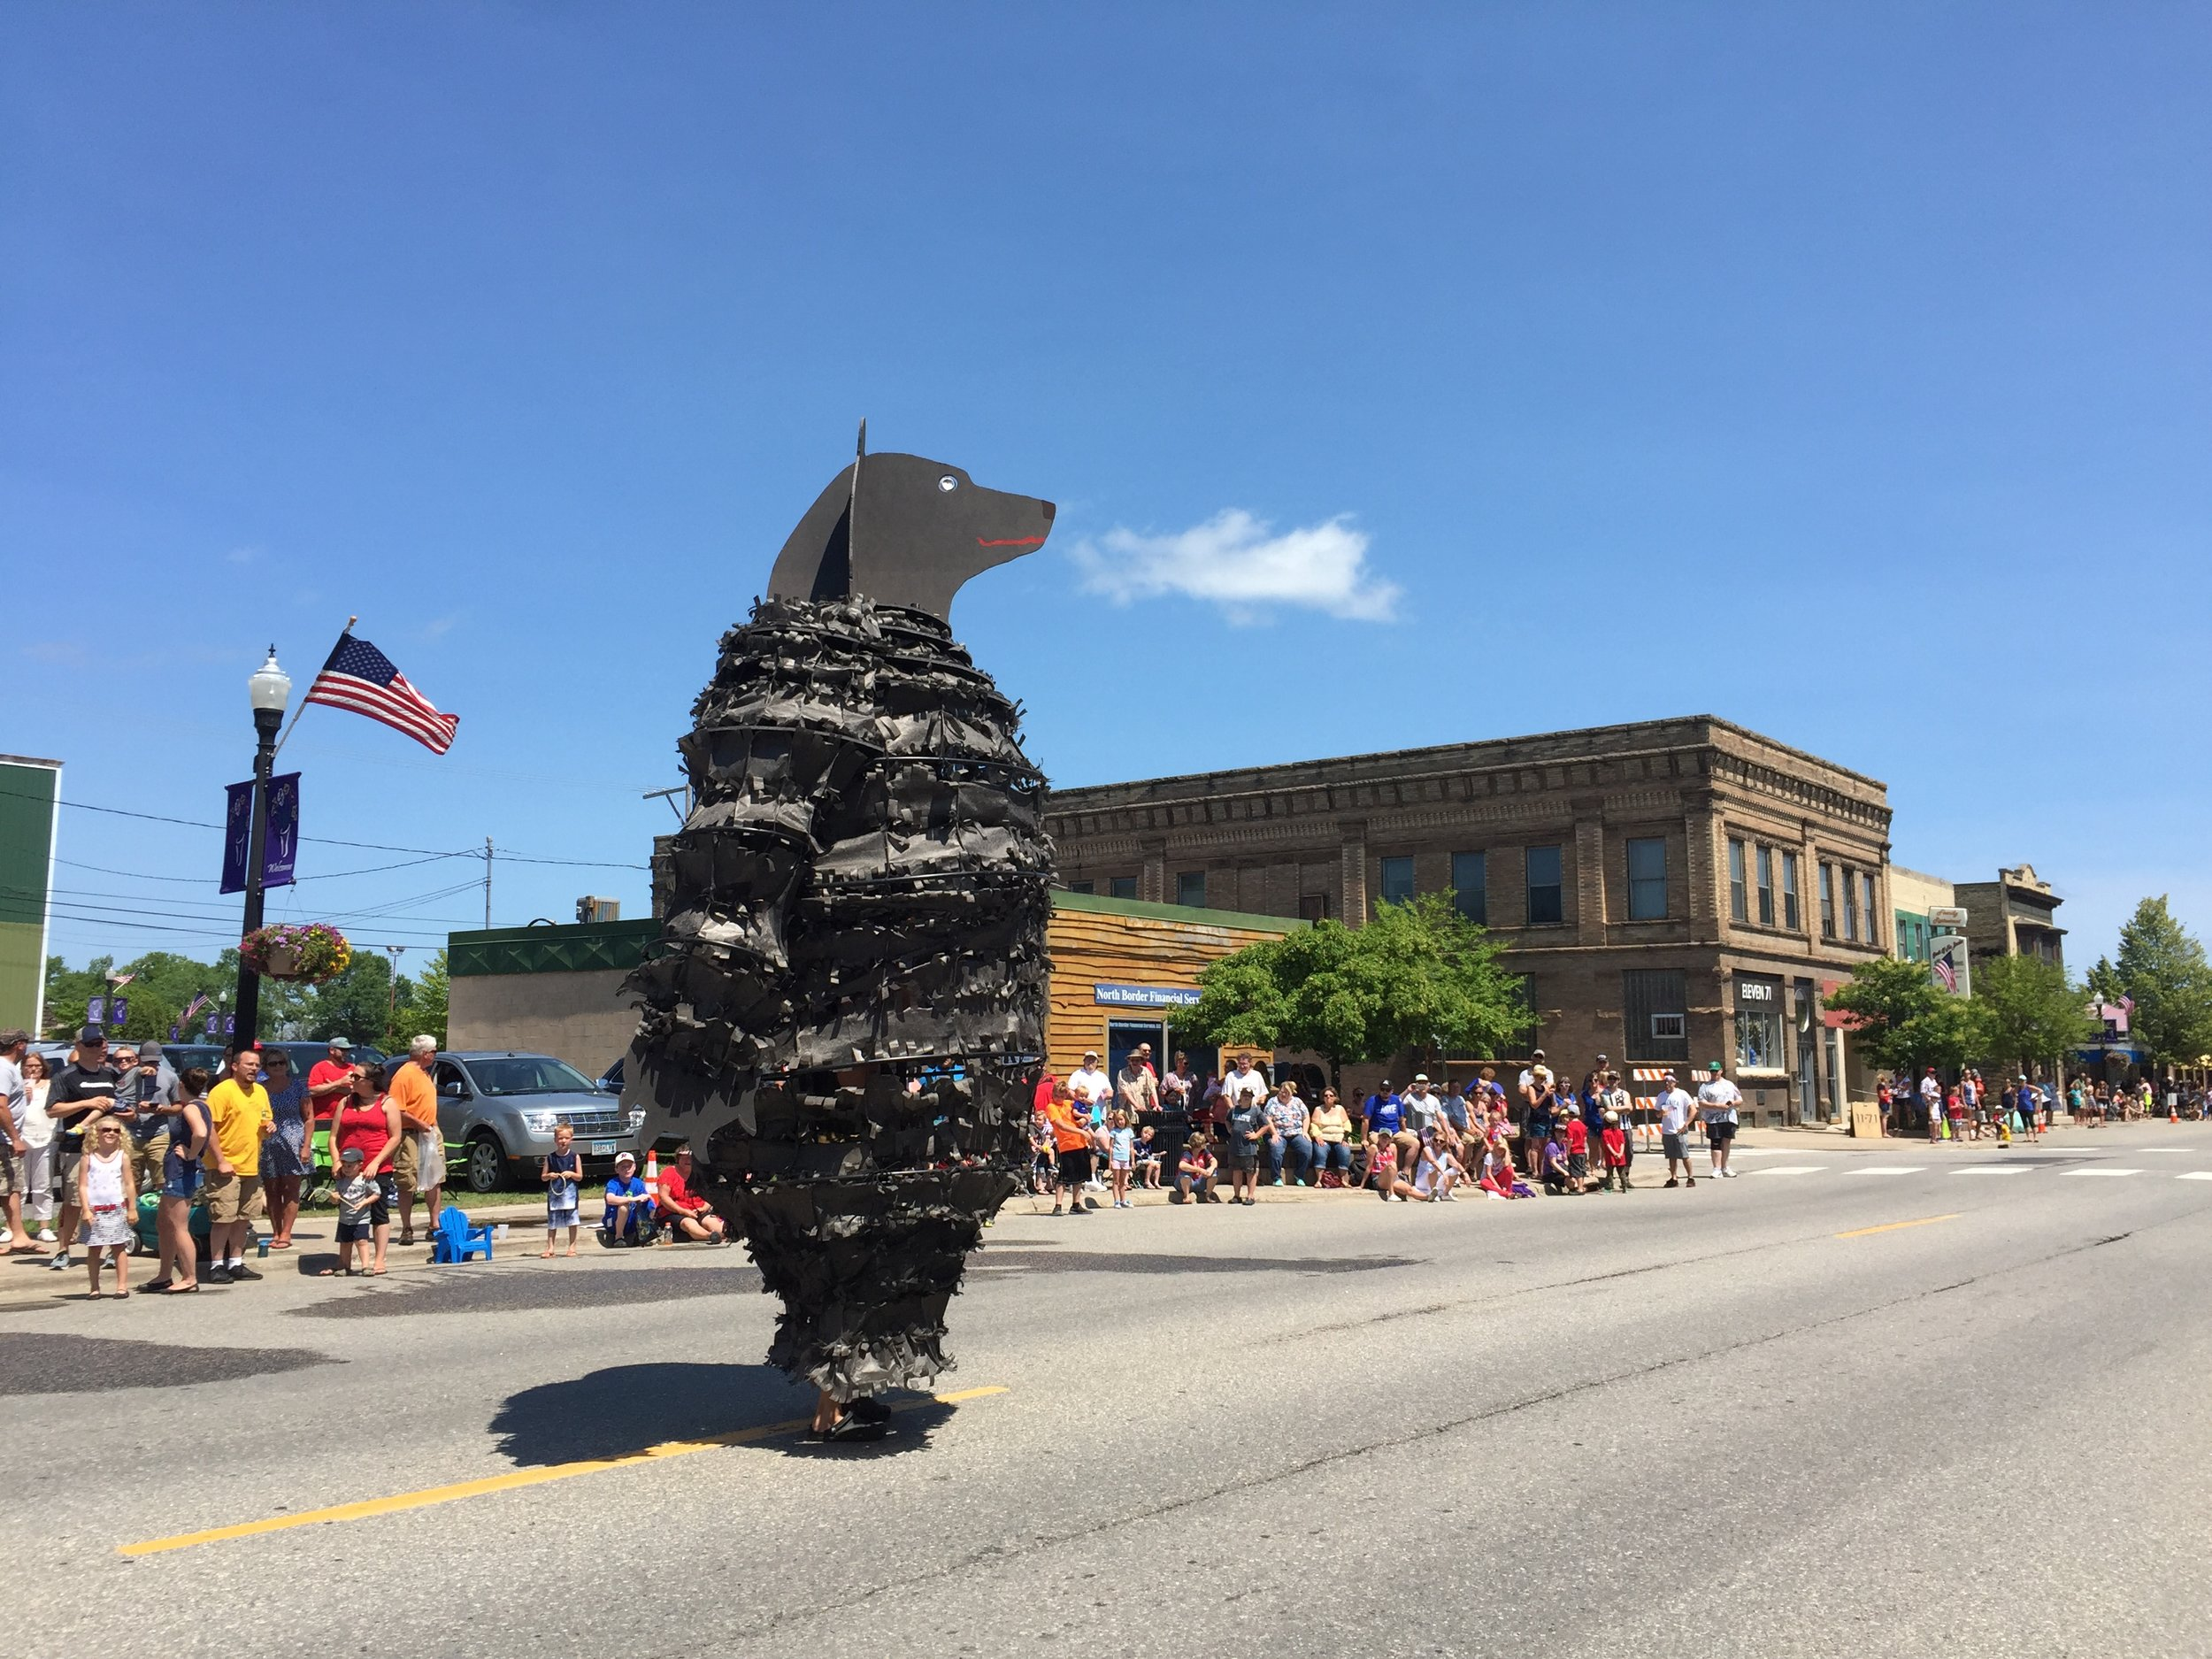 Black Bear, July 4th parade, 2018, International Falls, MN.  Photo by Martha Enzmann